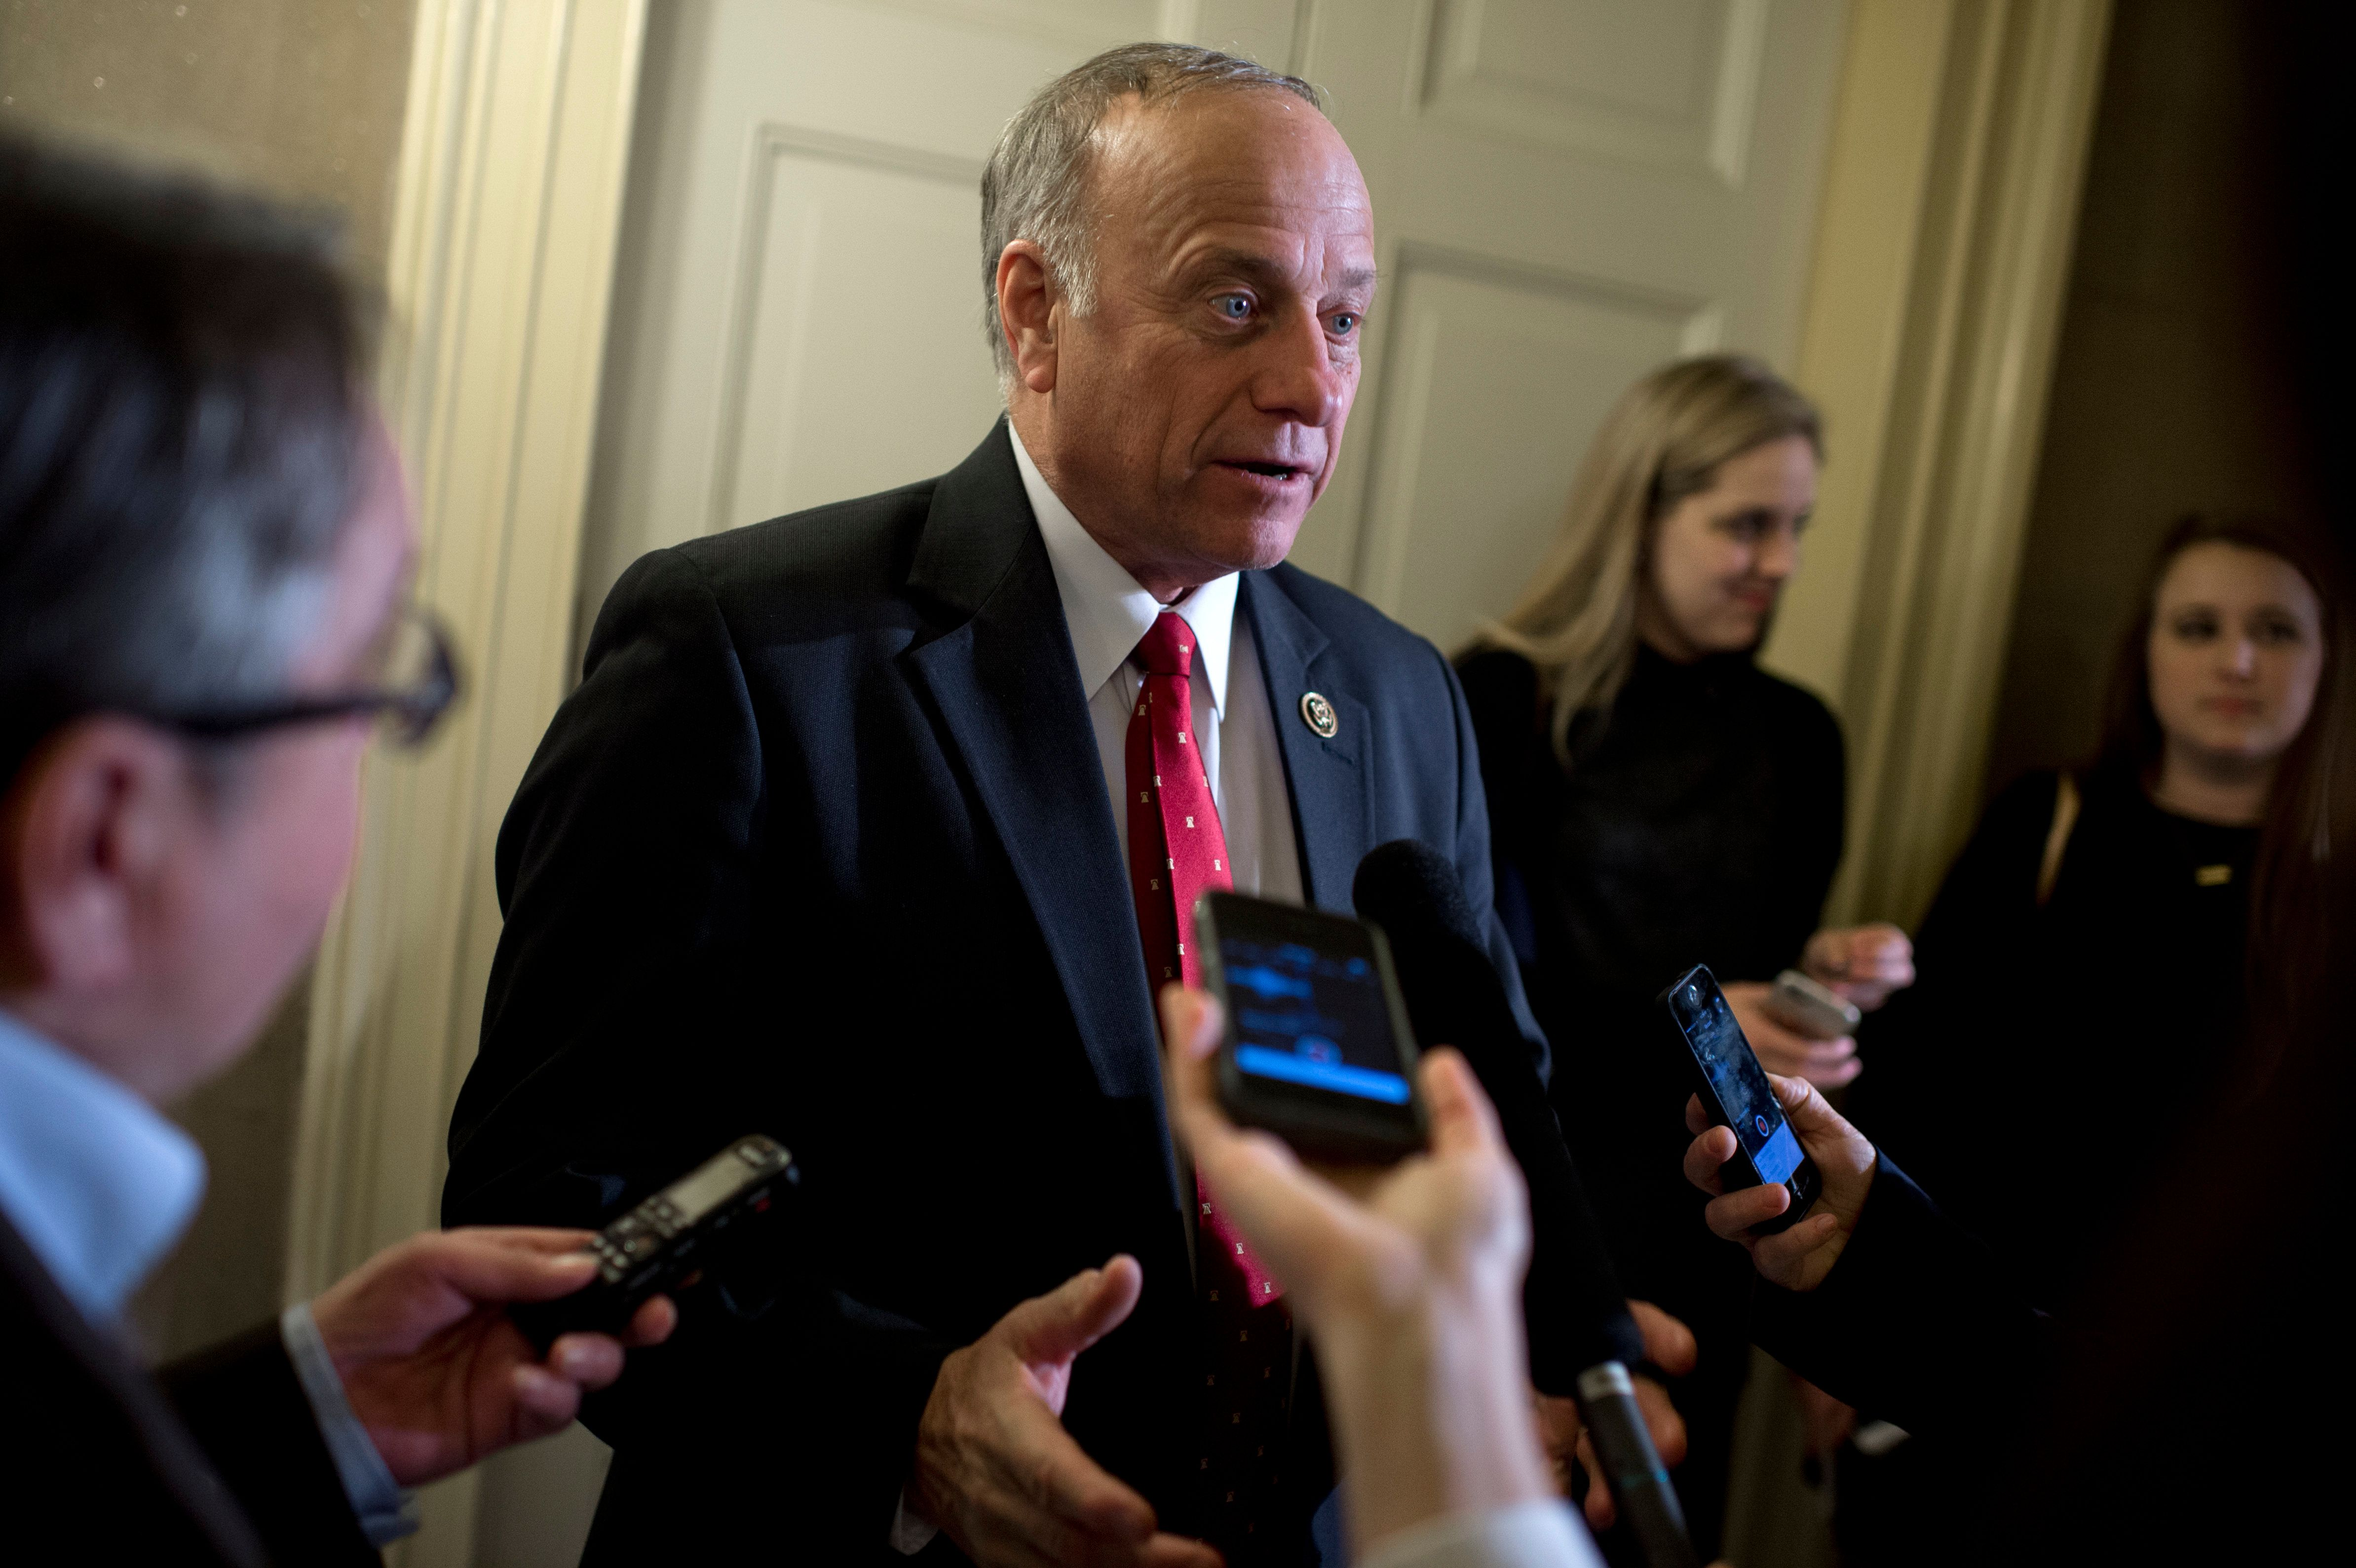 UNITED STATES - JANUARY 12: Rep. Steve King, R-Iowa, talks with reporters in the Capitol's Statuary Hall after President Obama's State of the Union address, January 12, 2016. (Photo By Tom Williams/CQ Roll Call)